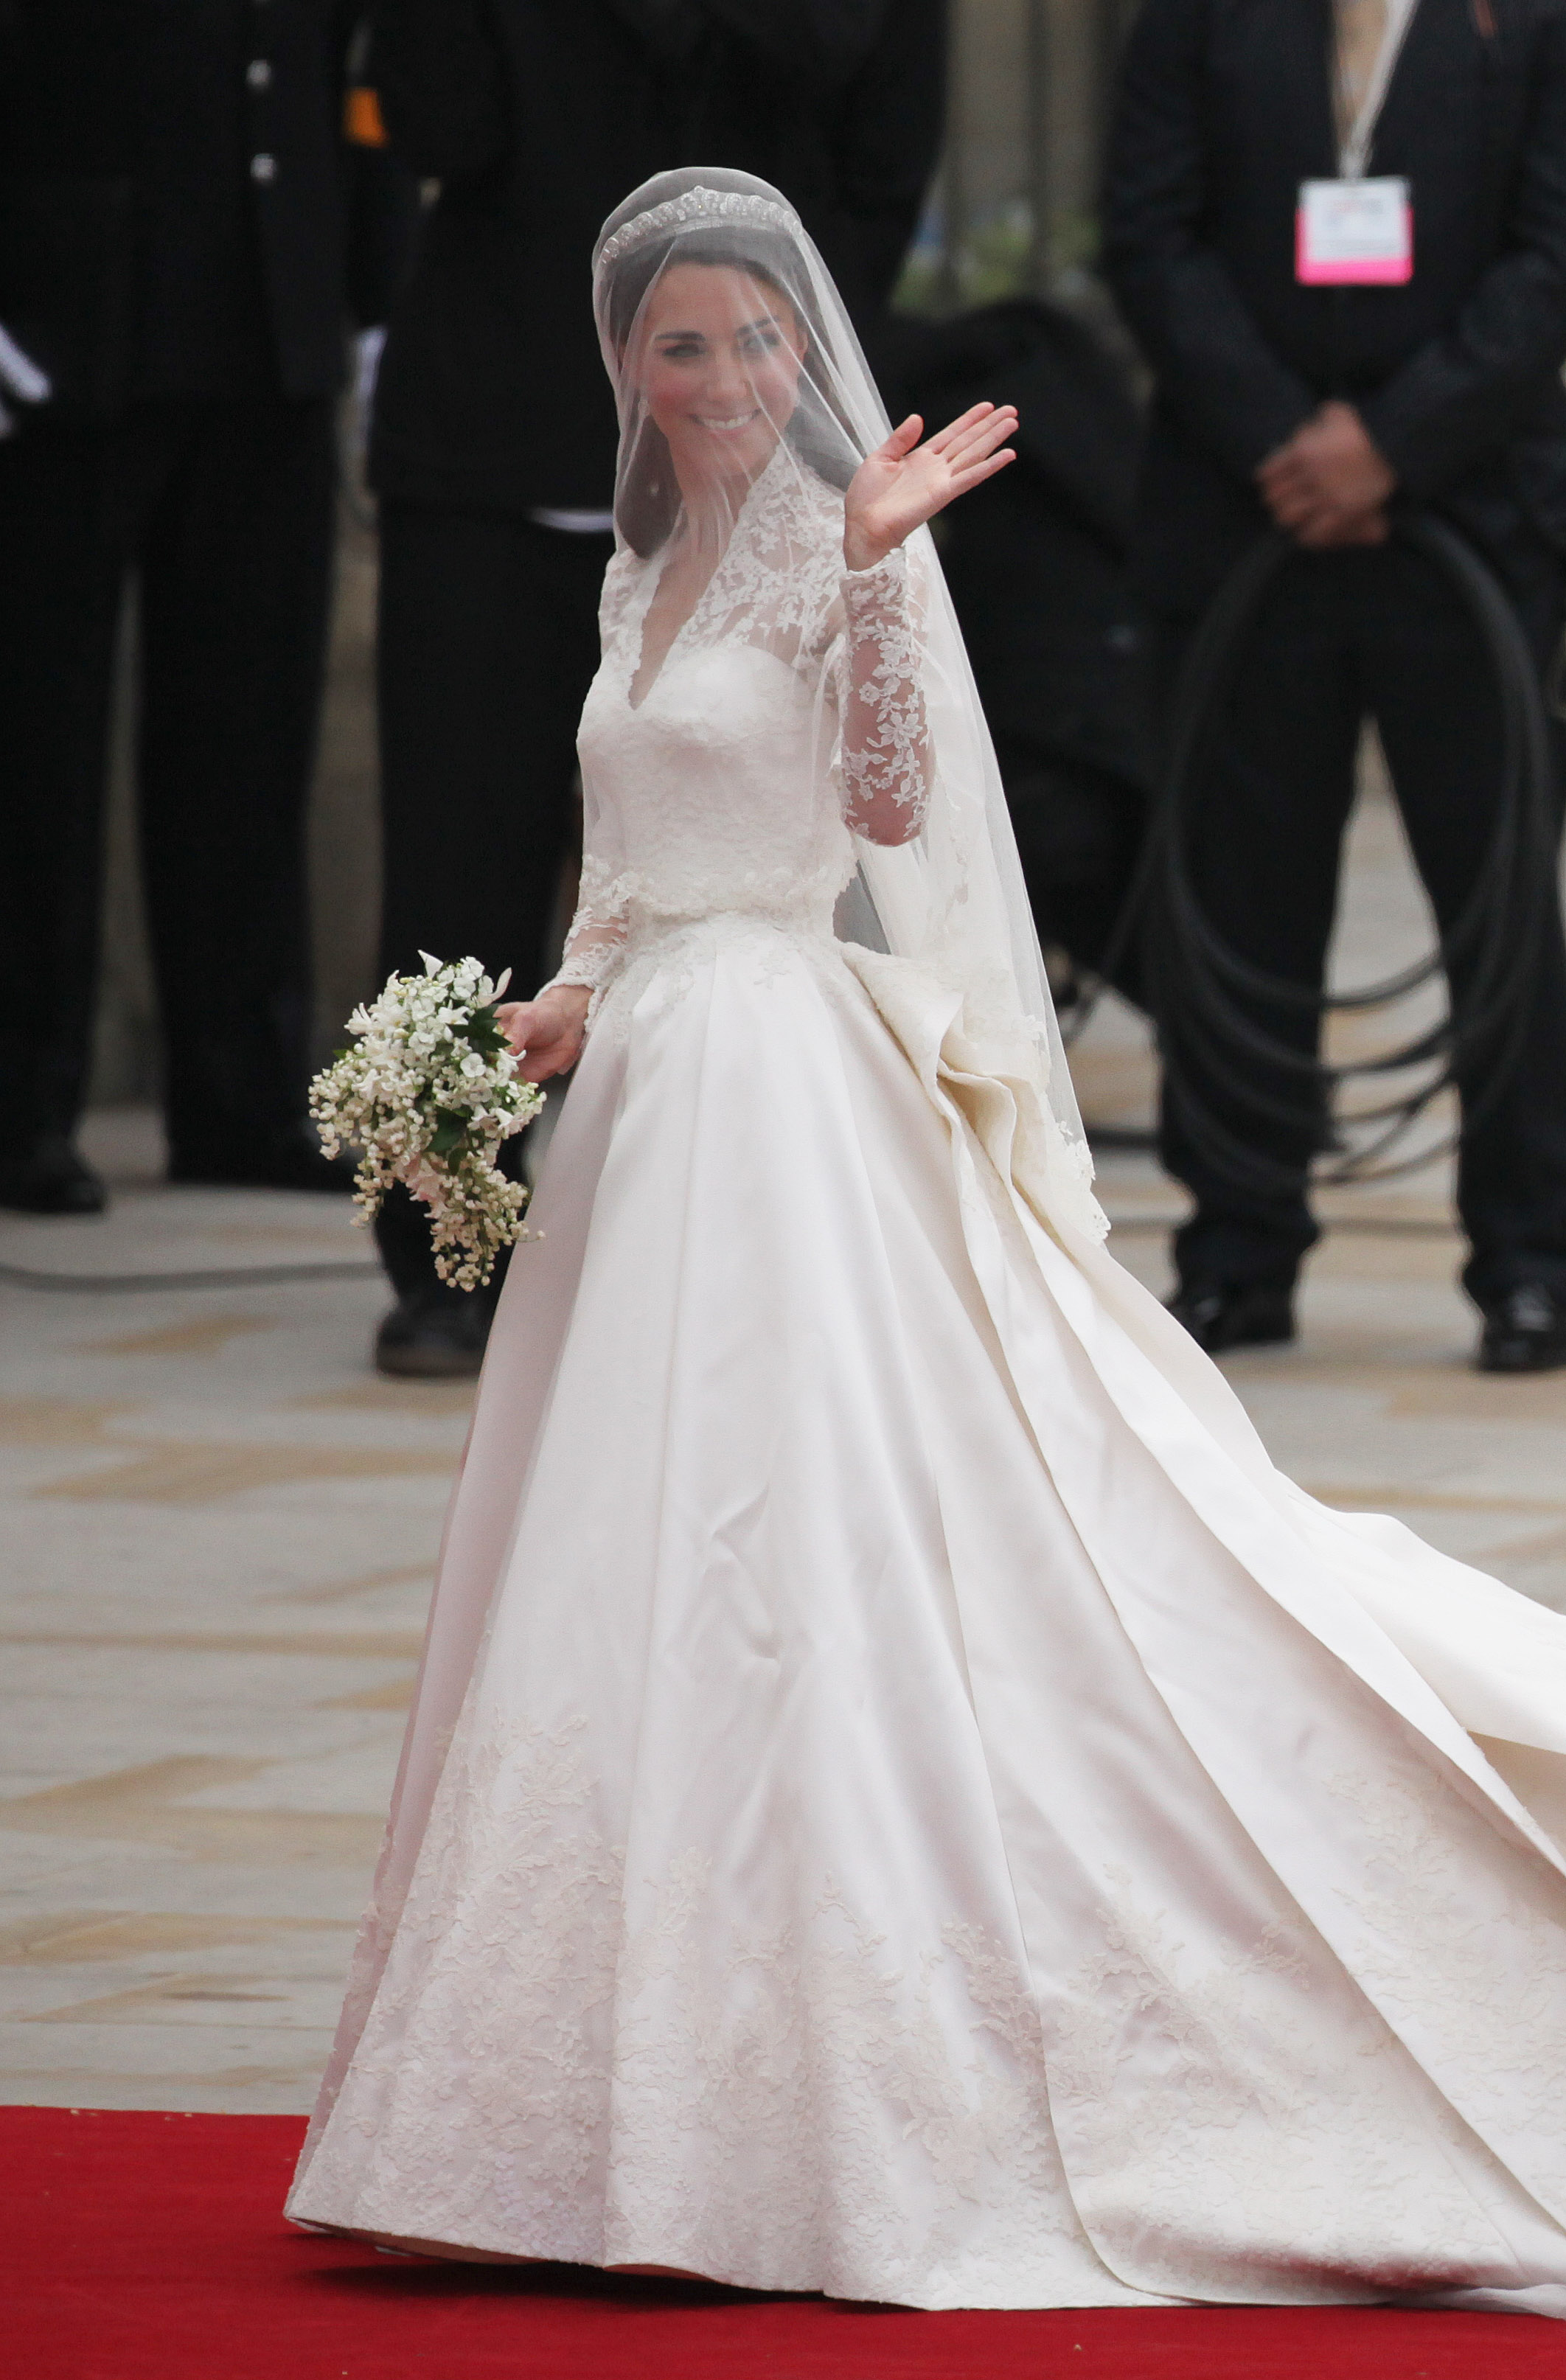 <strong>The Ultimate Fashion Statement</strong>                                   The newly minted Duchess of Cambridge wowed the public and couture experts alike with a stunning gown designed by Sarah Burton for Alexander McQueen at her wedding to Prince William on April 29, 2011.